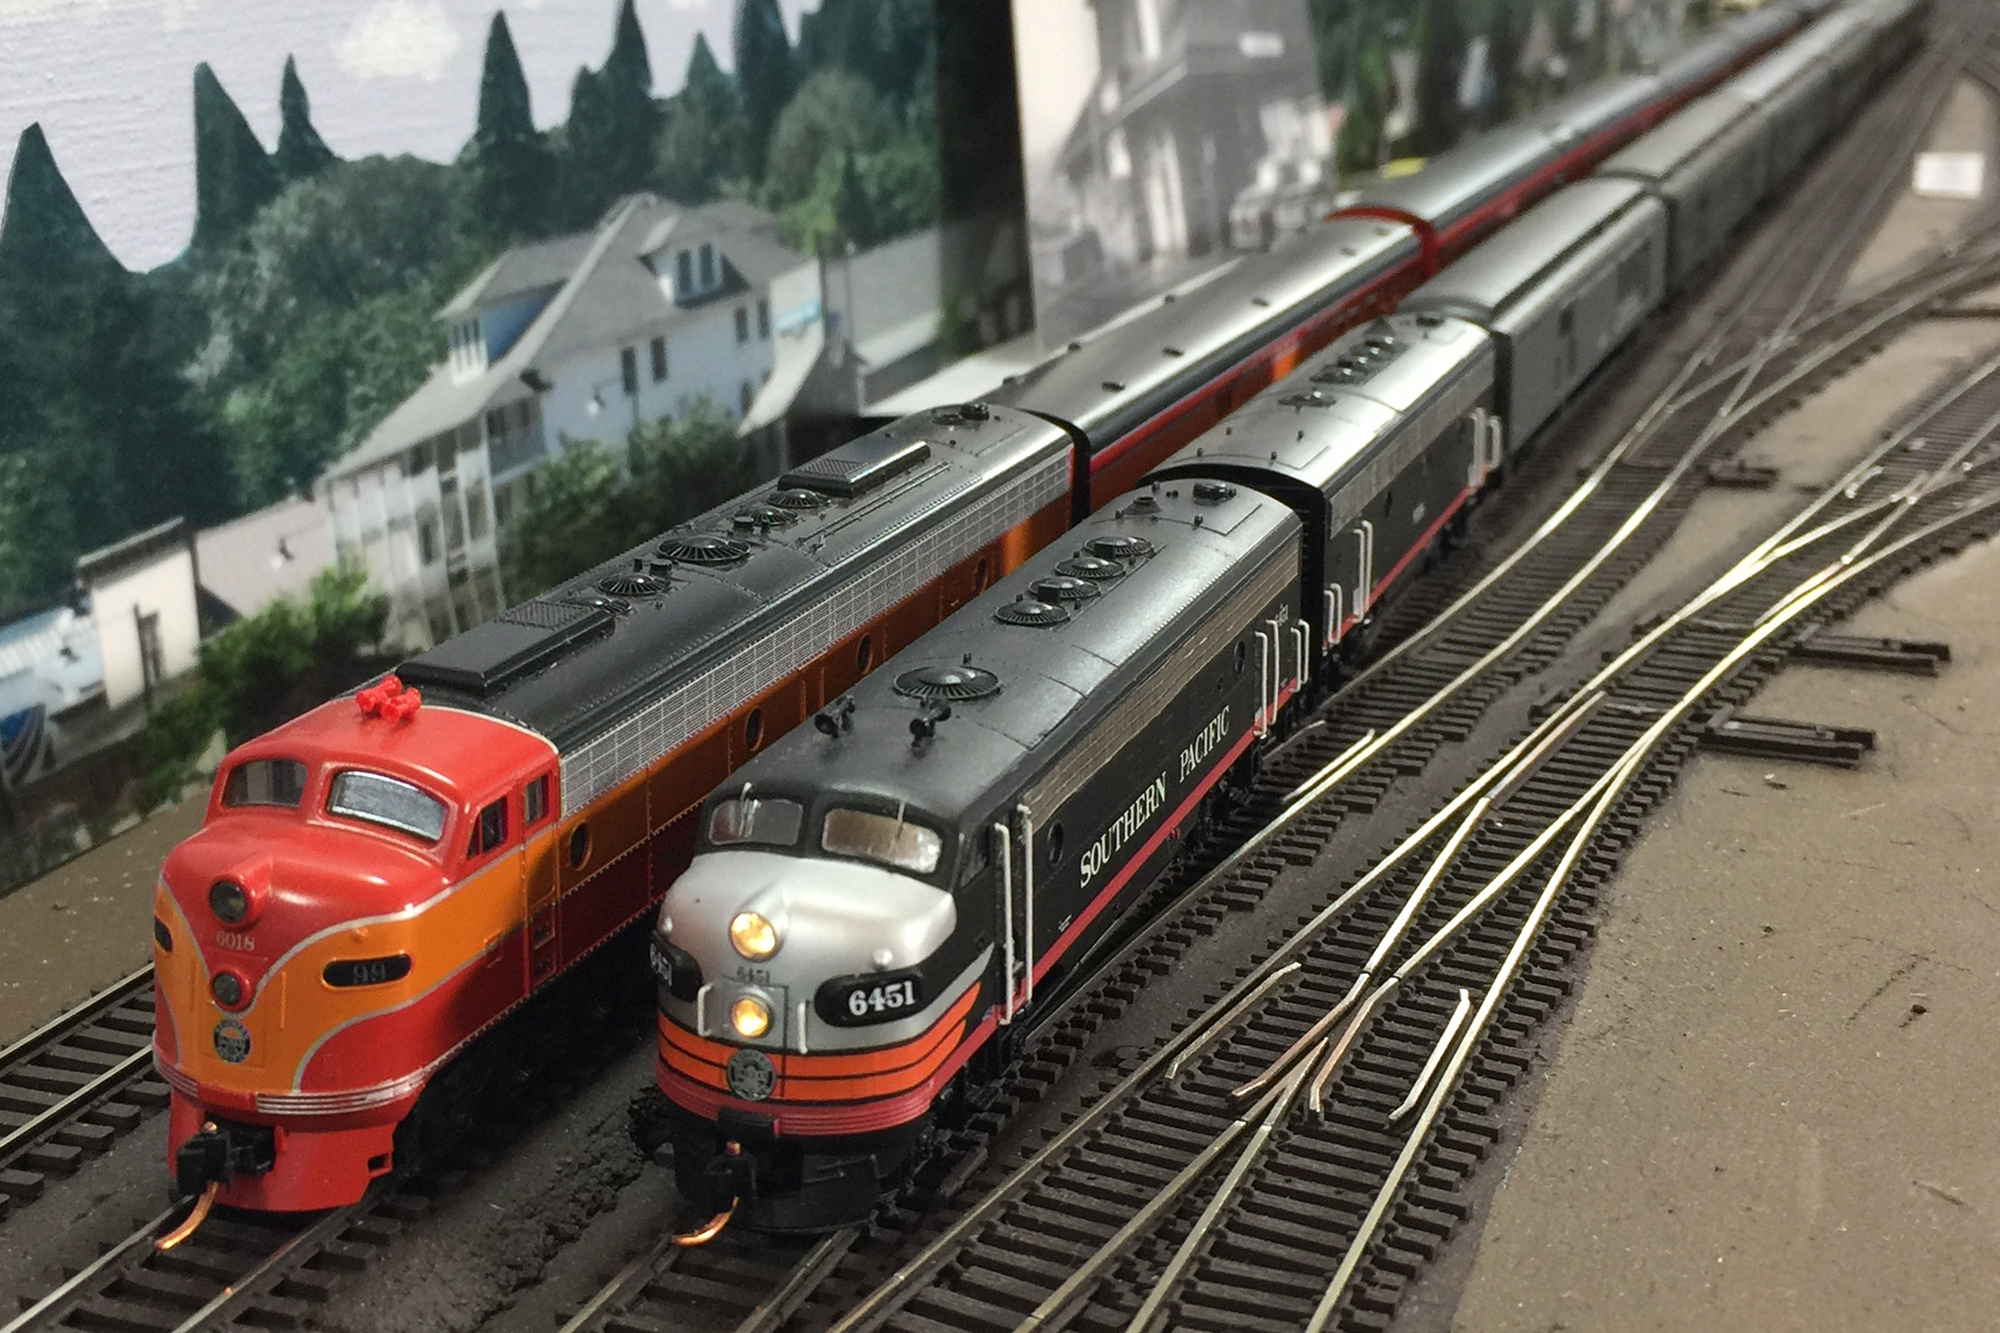 N Scale passenger trains and layout by Ryan Ryan Di Fede, San Diego Division member.